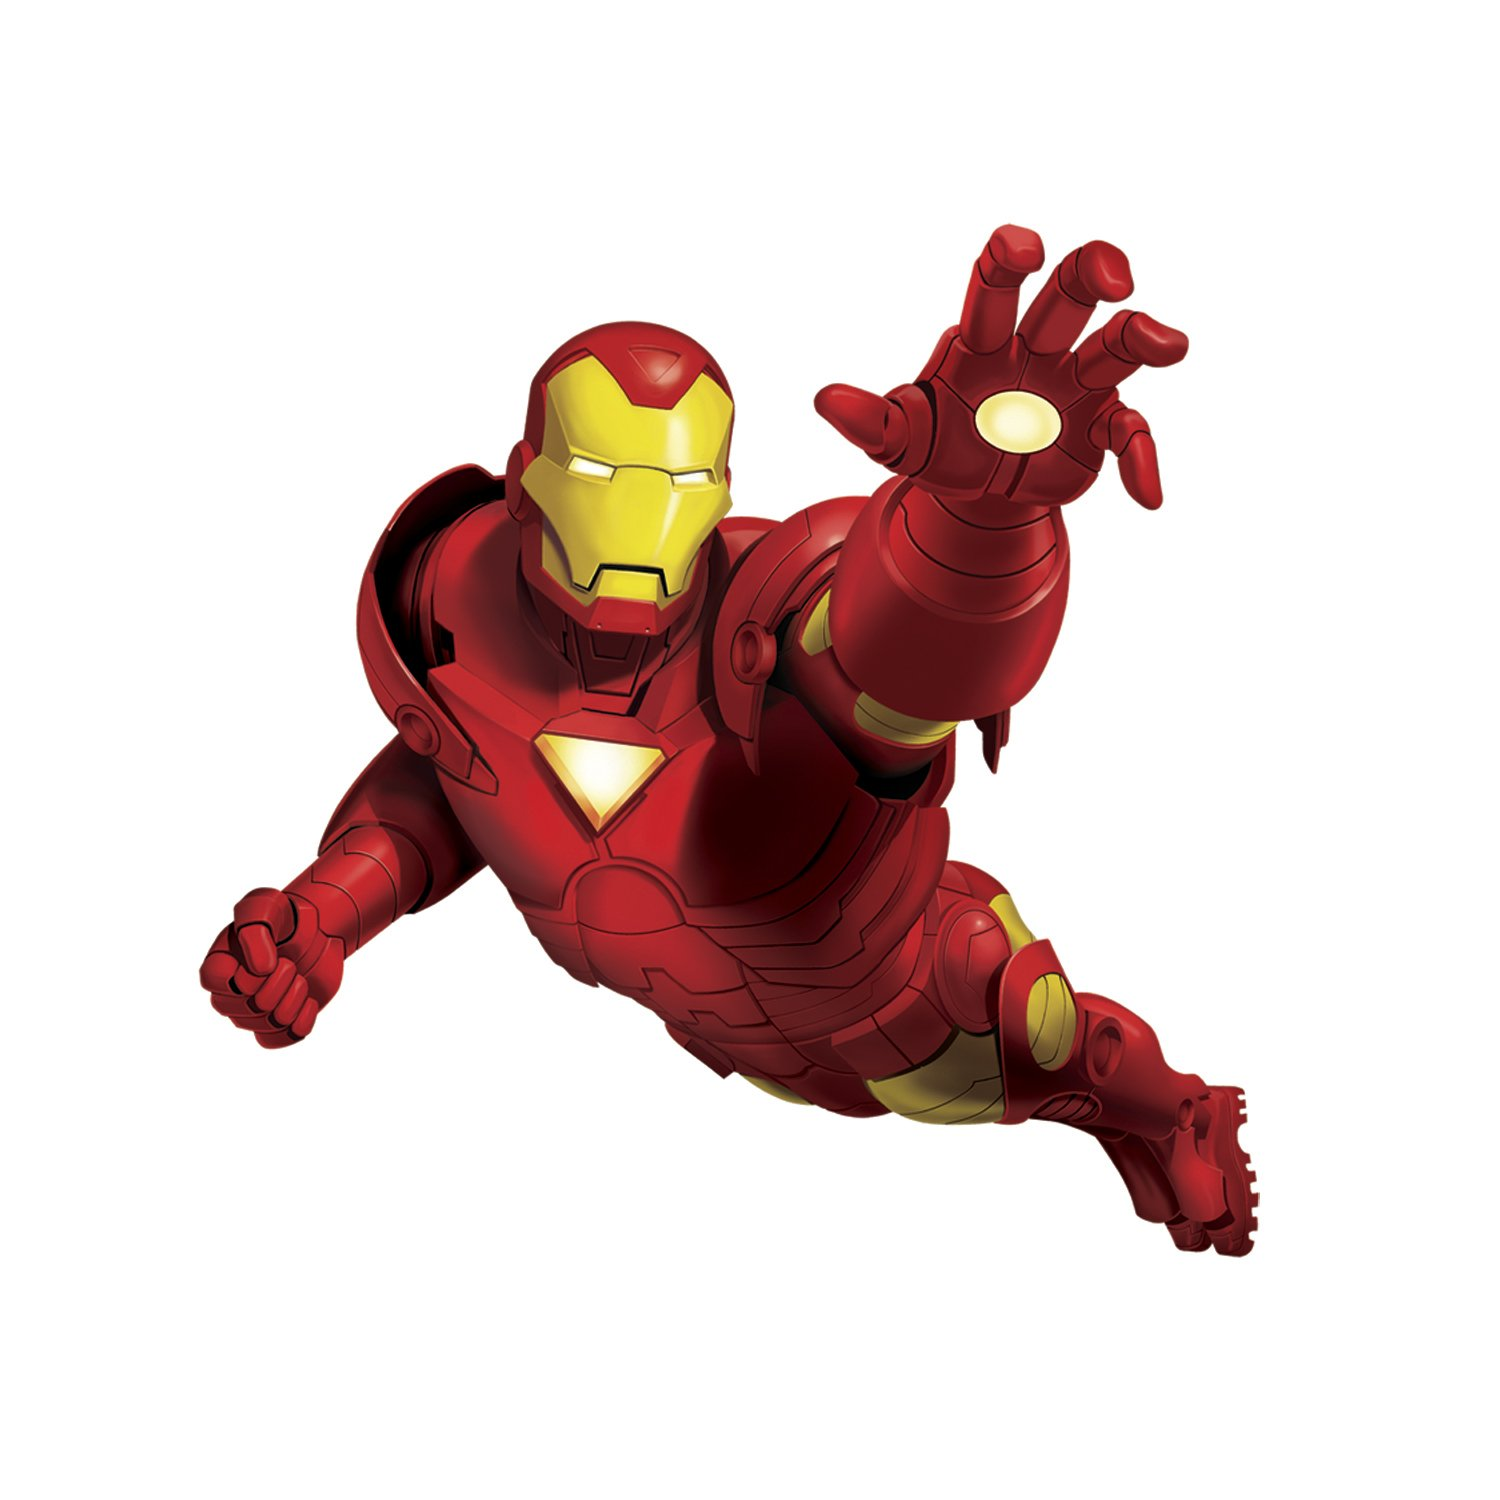 High Quality RoomMates Ironman Giant Repositionable Marvel Wall Stickers: Amazon.co.uk:  Kitchen U0026 Home Part 13